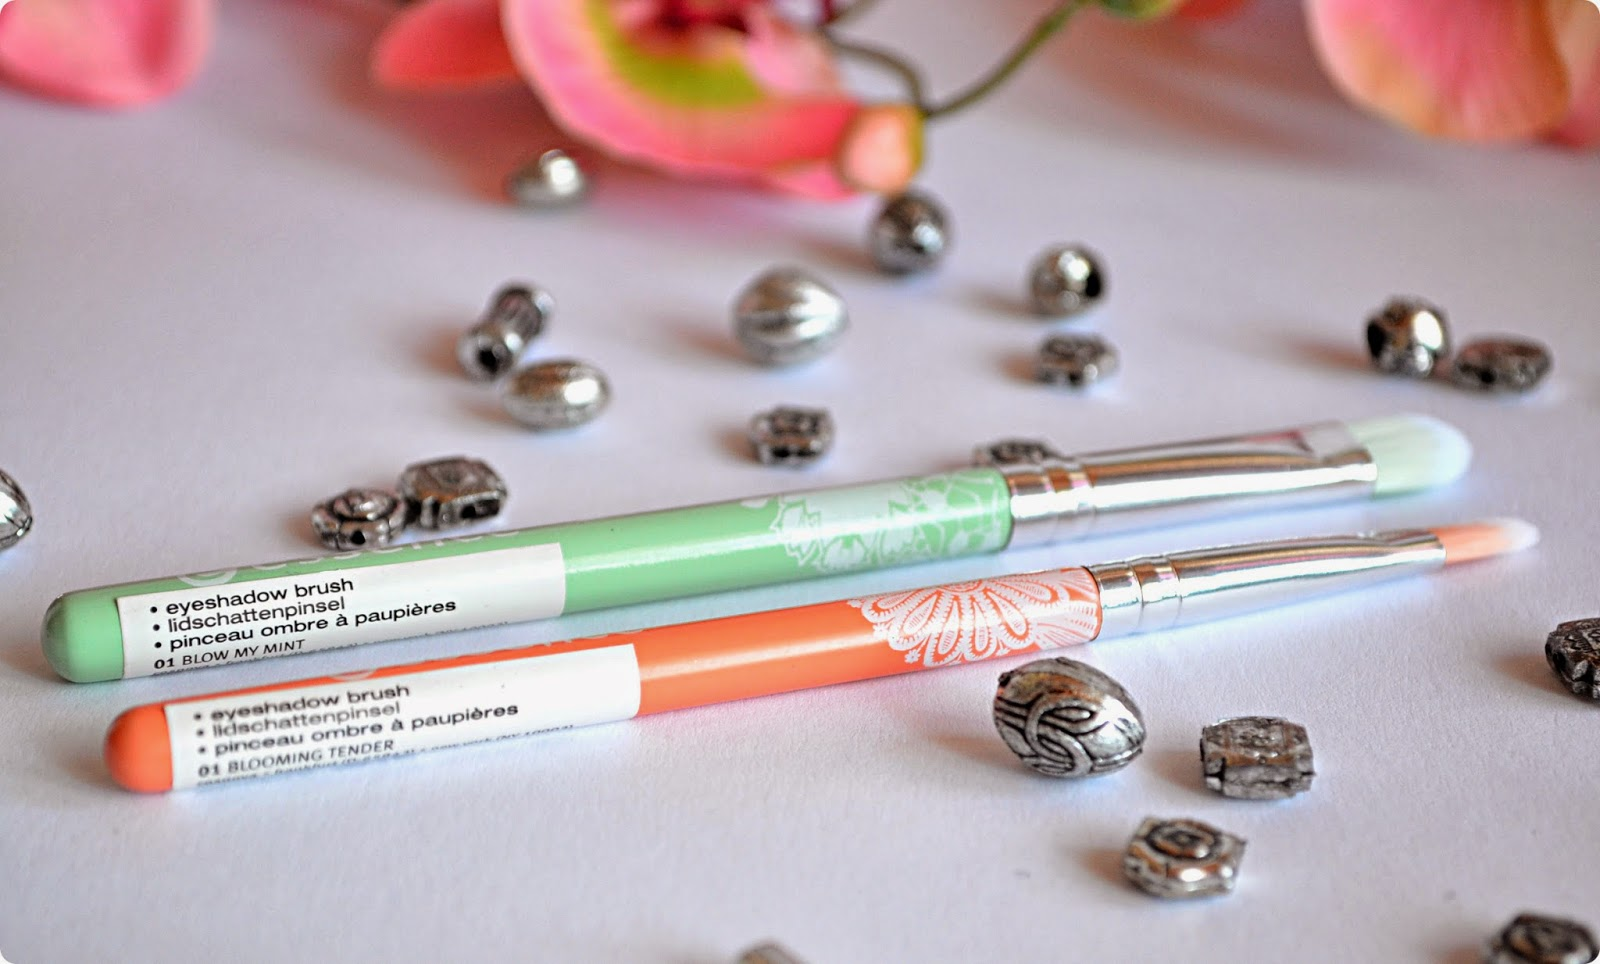 Review essence Bloom Me Up Tools EYESHADOW BRUSH BLOW MY MINT & BLOOMING TENDER